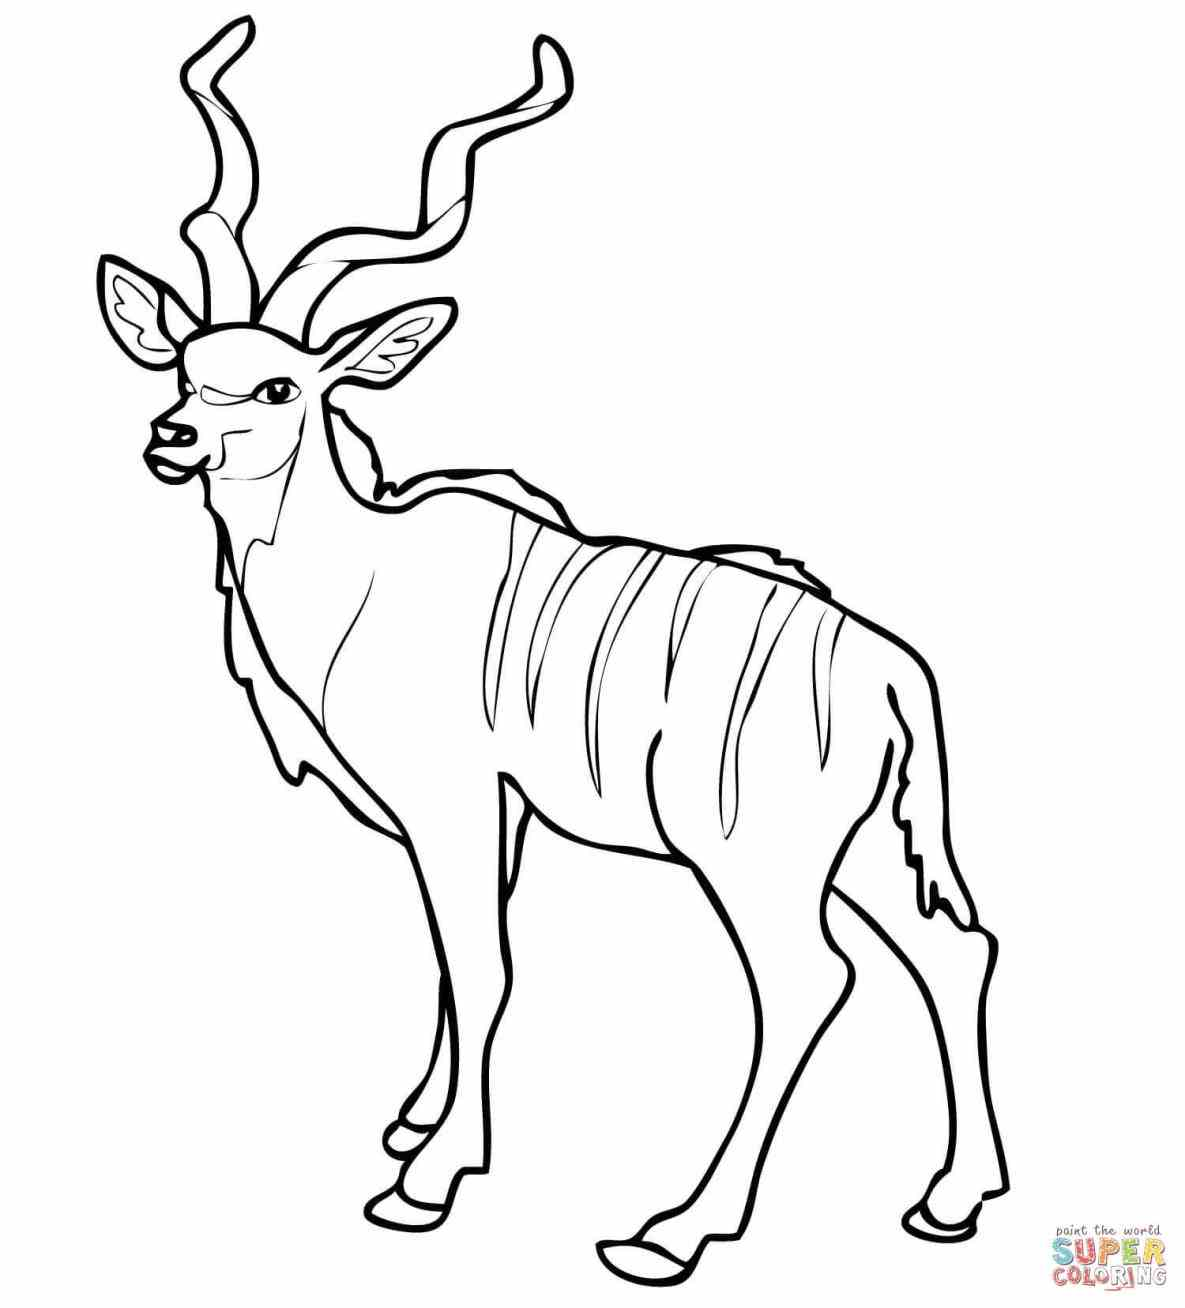 1185x1308 Impala Coloring Page Web Coloring Pages